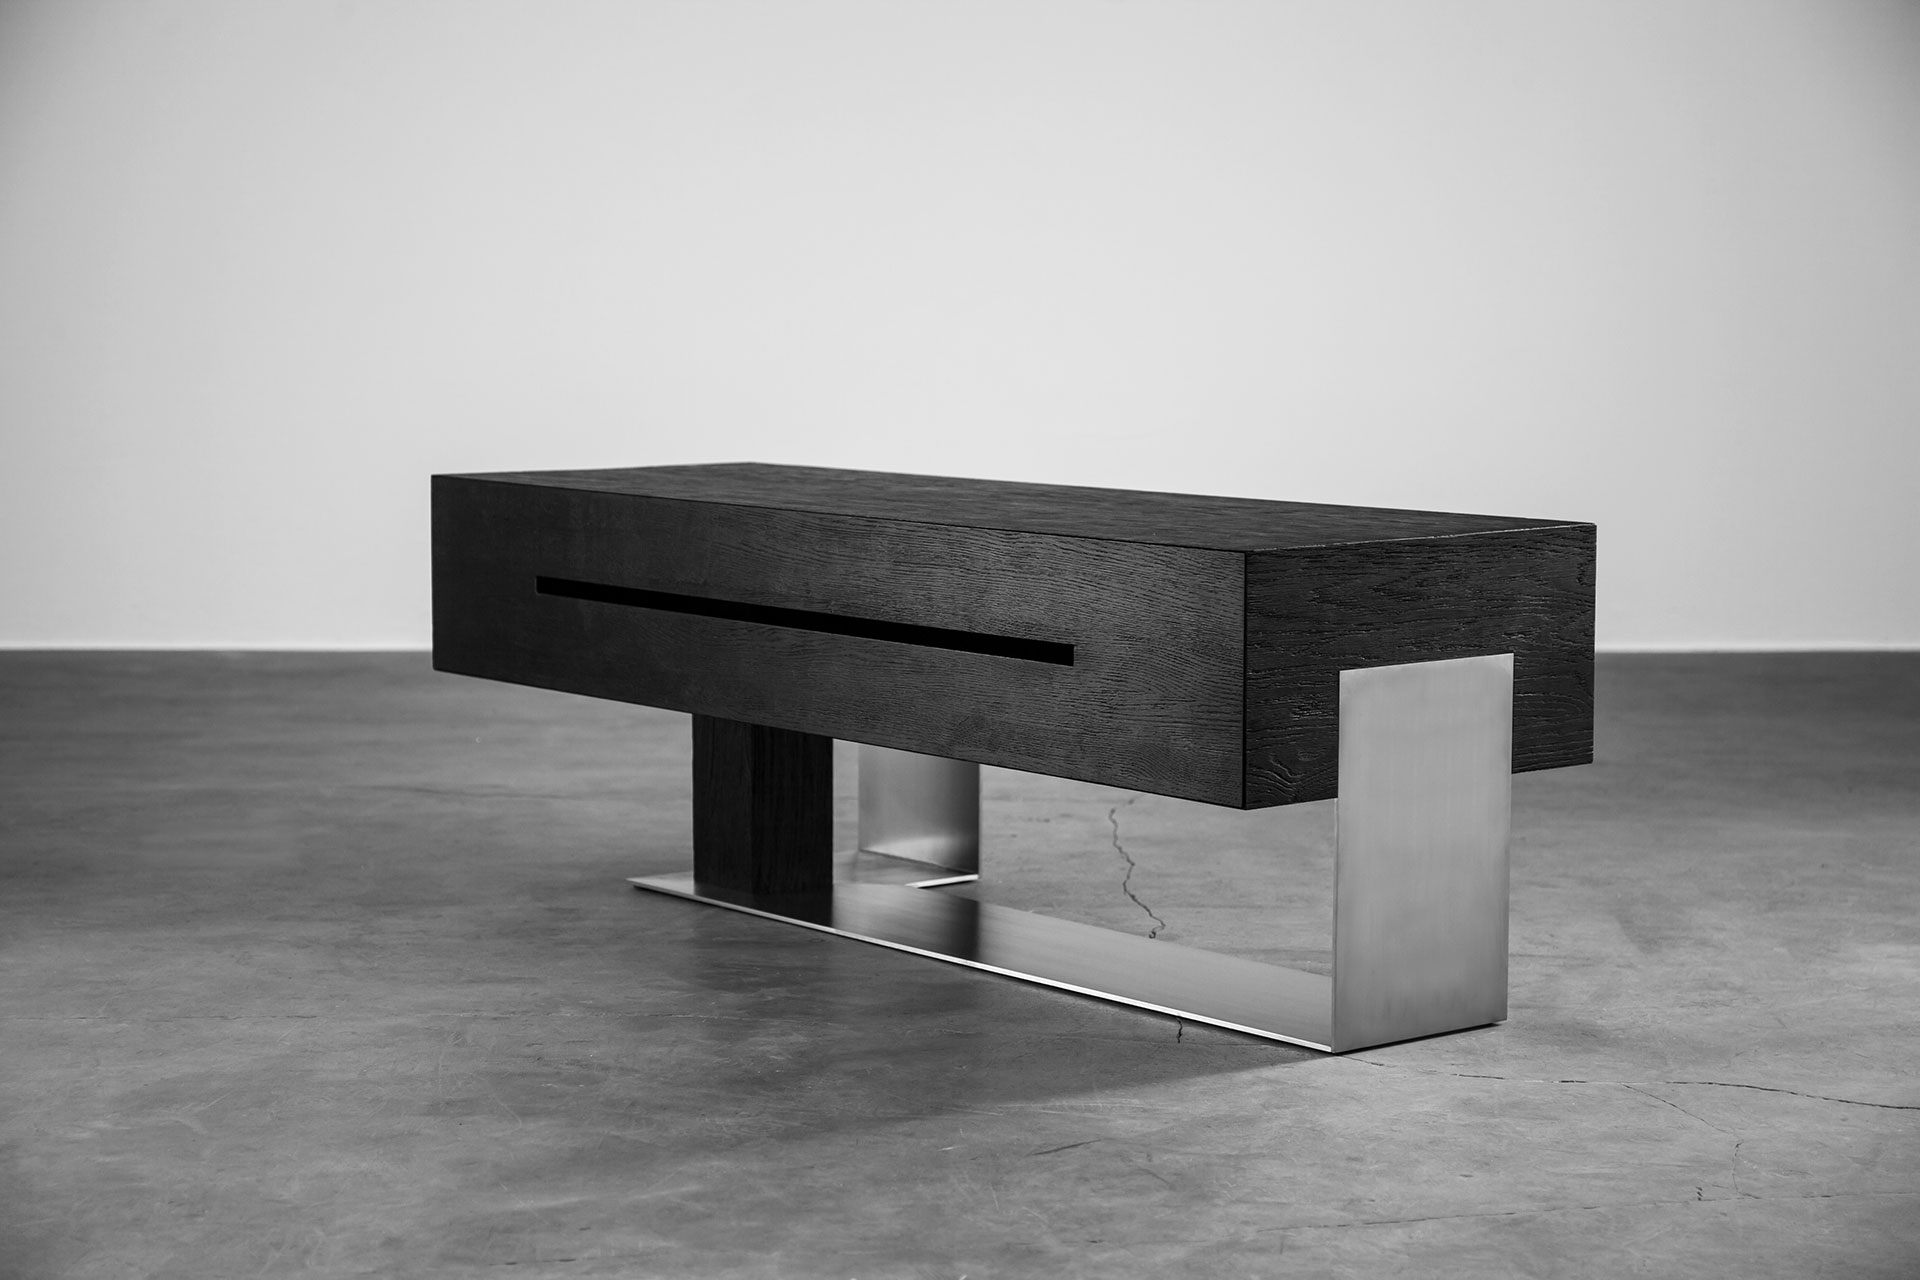 Contemporary media console inspired by brutalism style